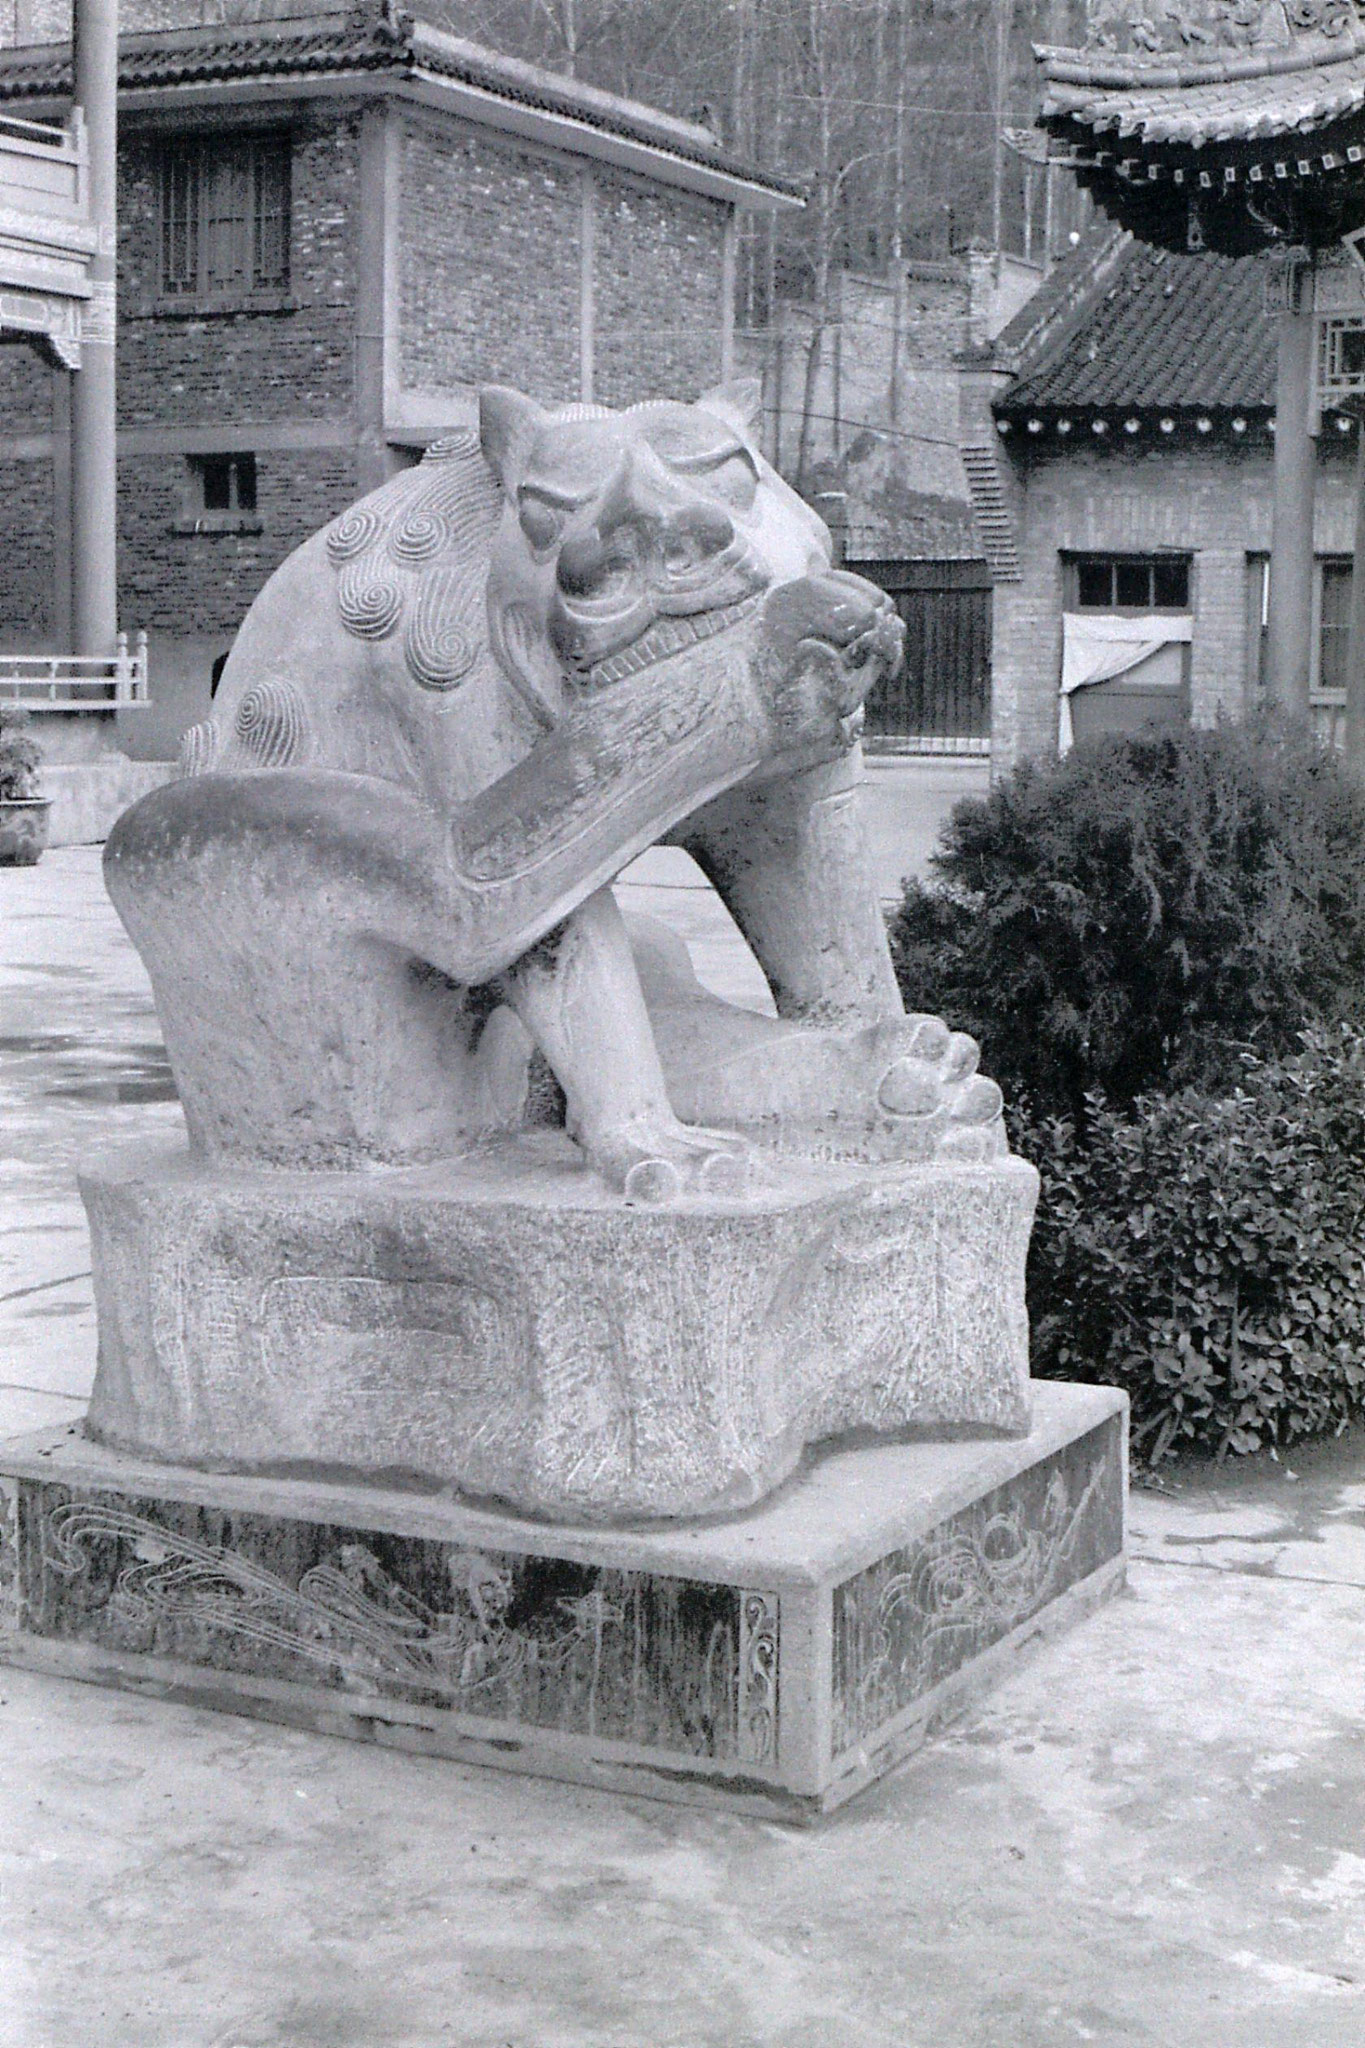 4/3/1989: 13: Xi'an griffin